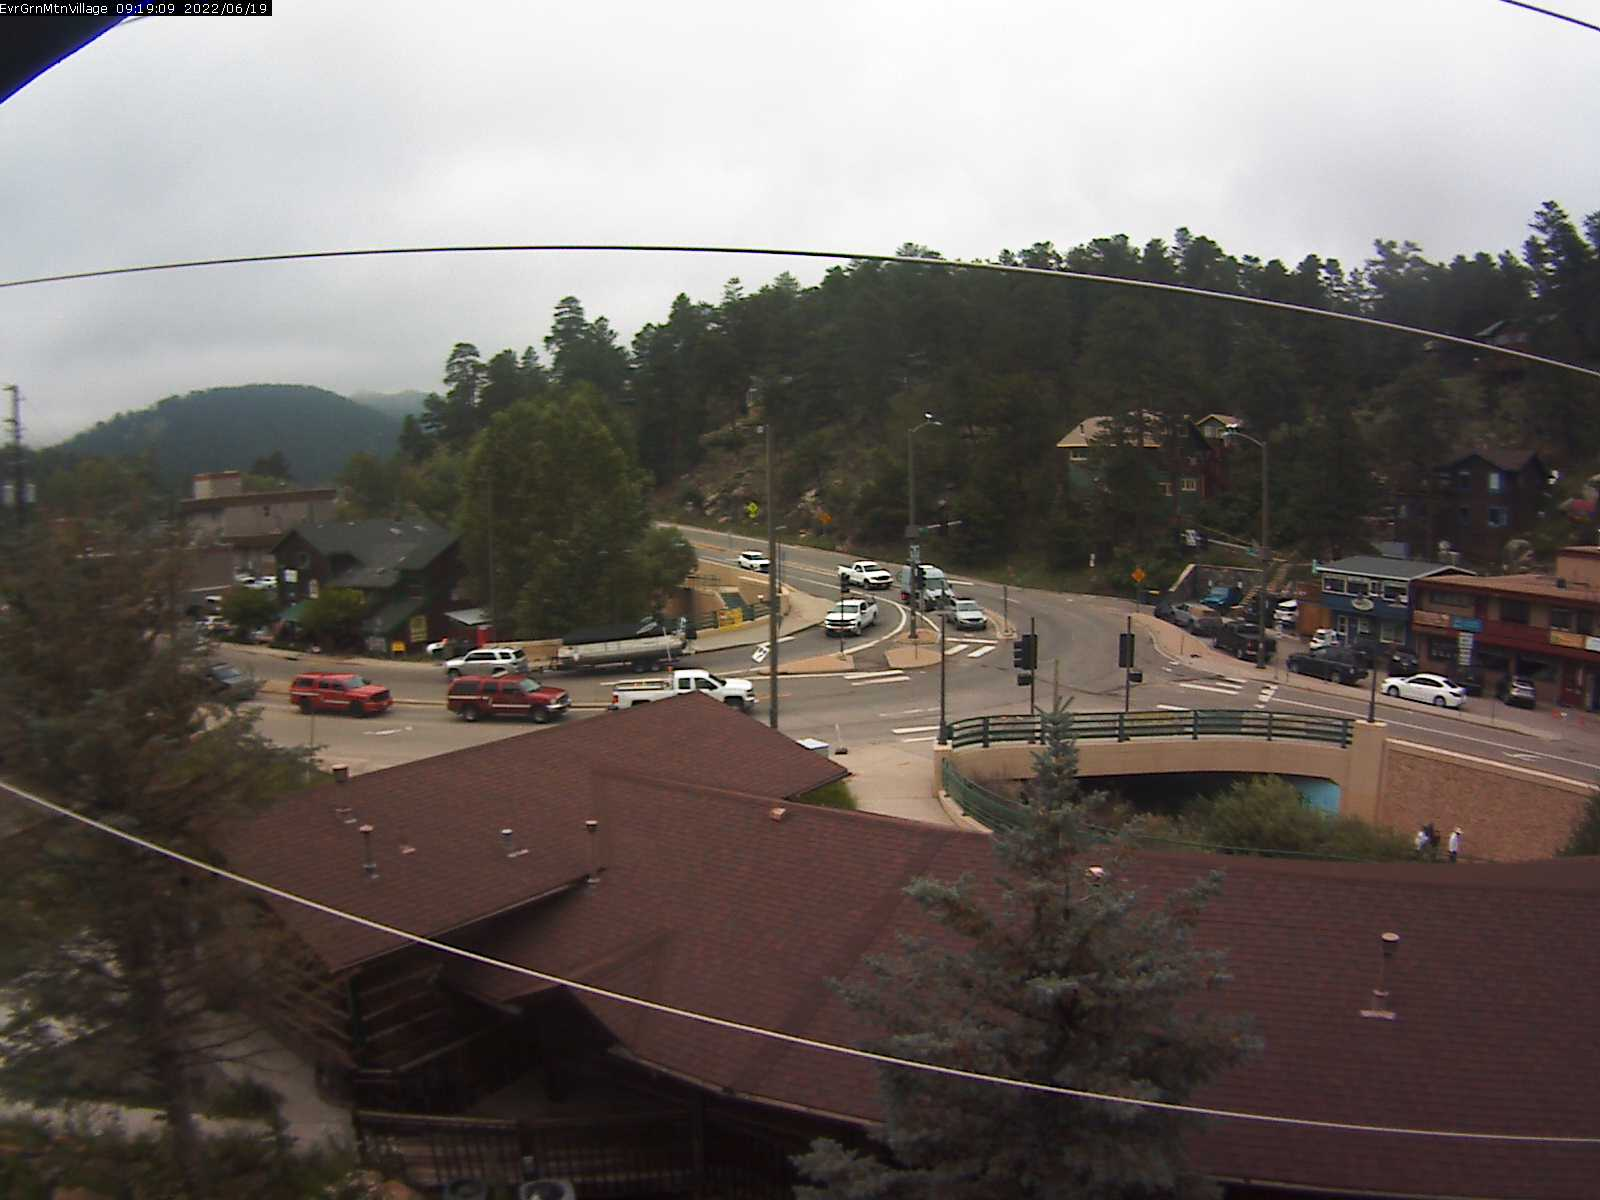 Evergreen webcam 2